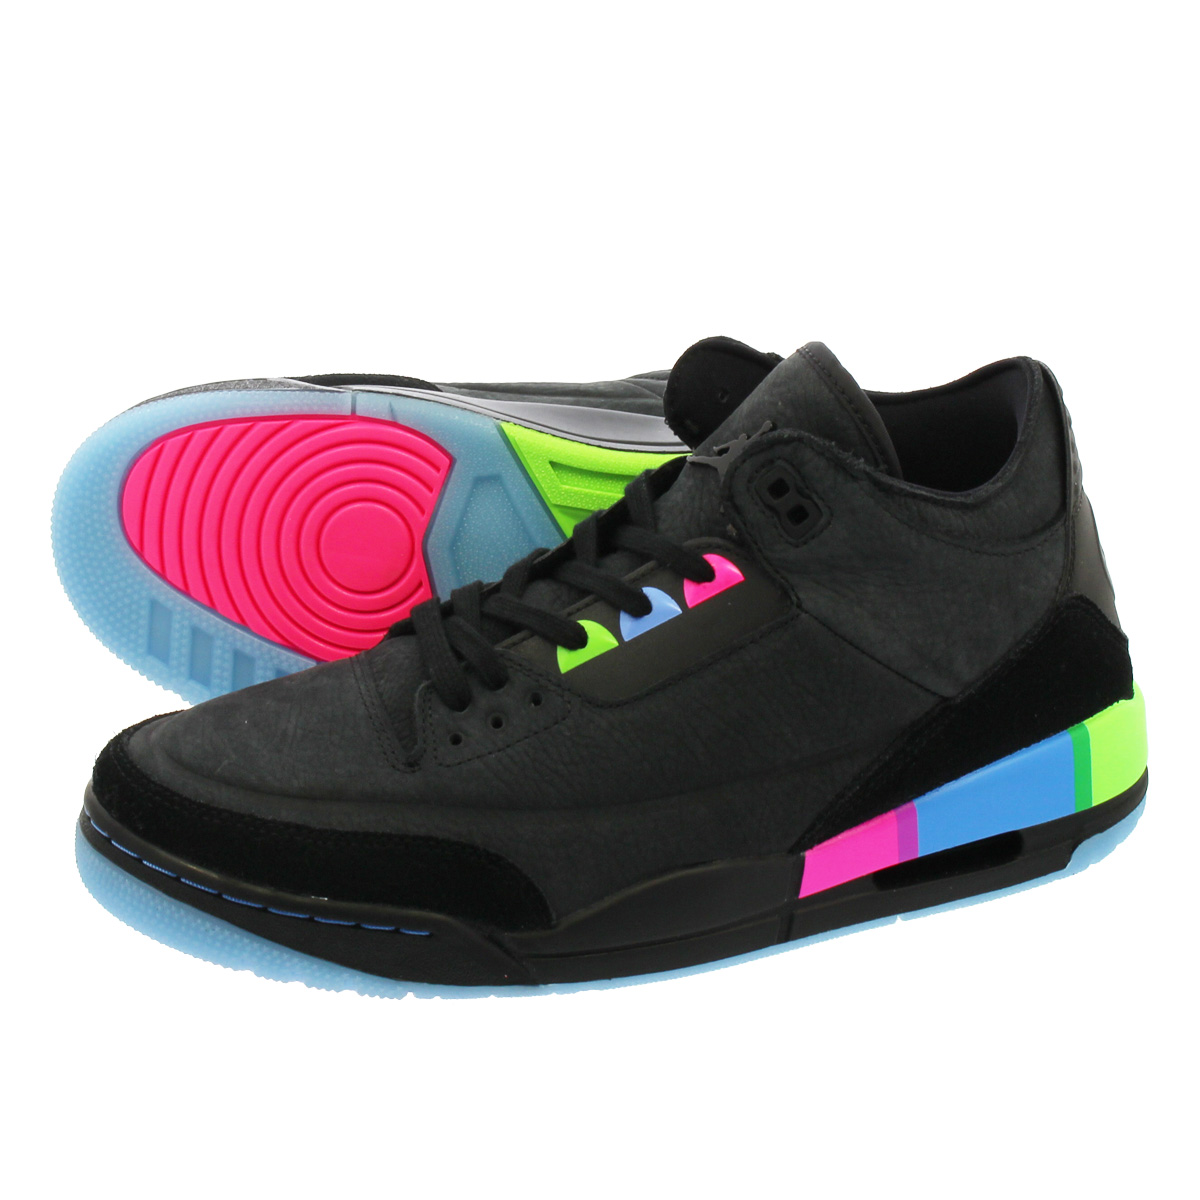 1dbfc314c3e LOWTEX PLUS: NIKE AIR JORDAN 3 RETRO Nike Air Jordan 3 nostalgic  BLACK/ELECTRIC GREEN at9195-001 | Rakuten Global Market